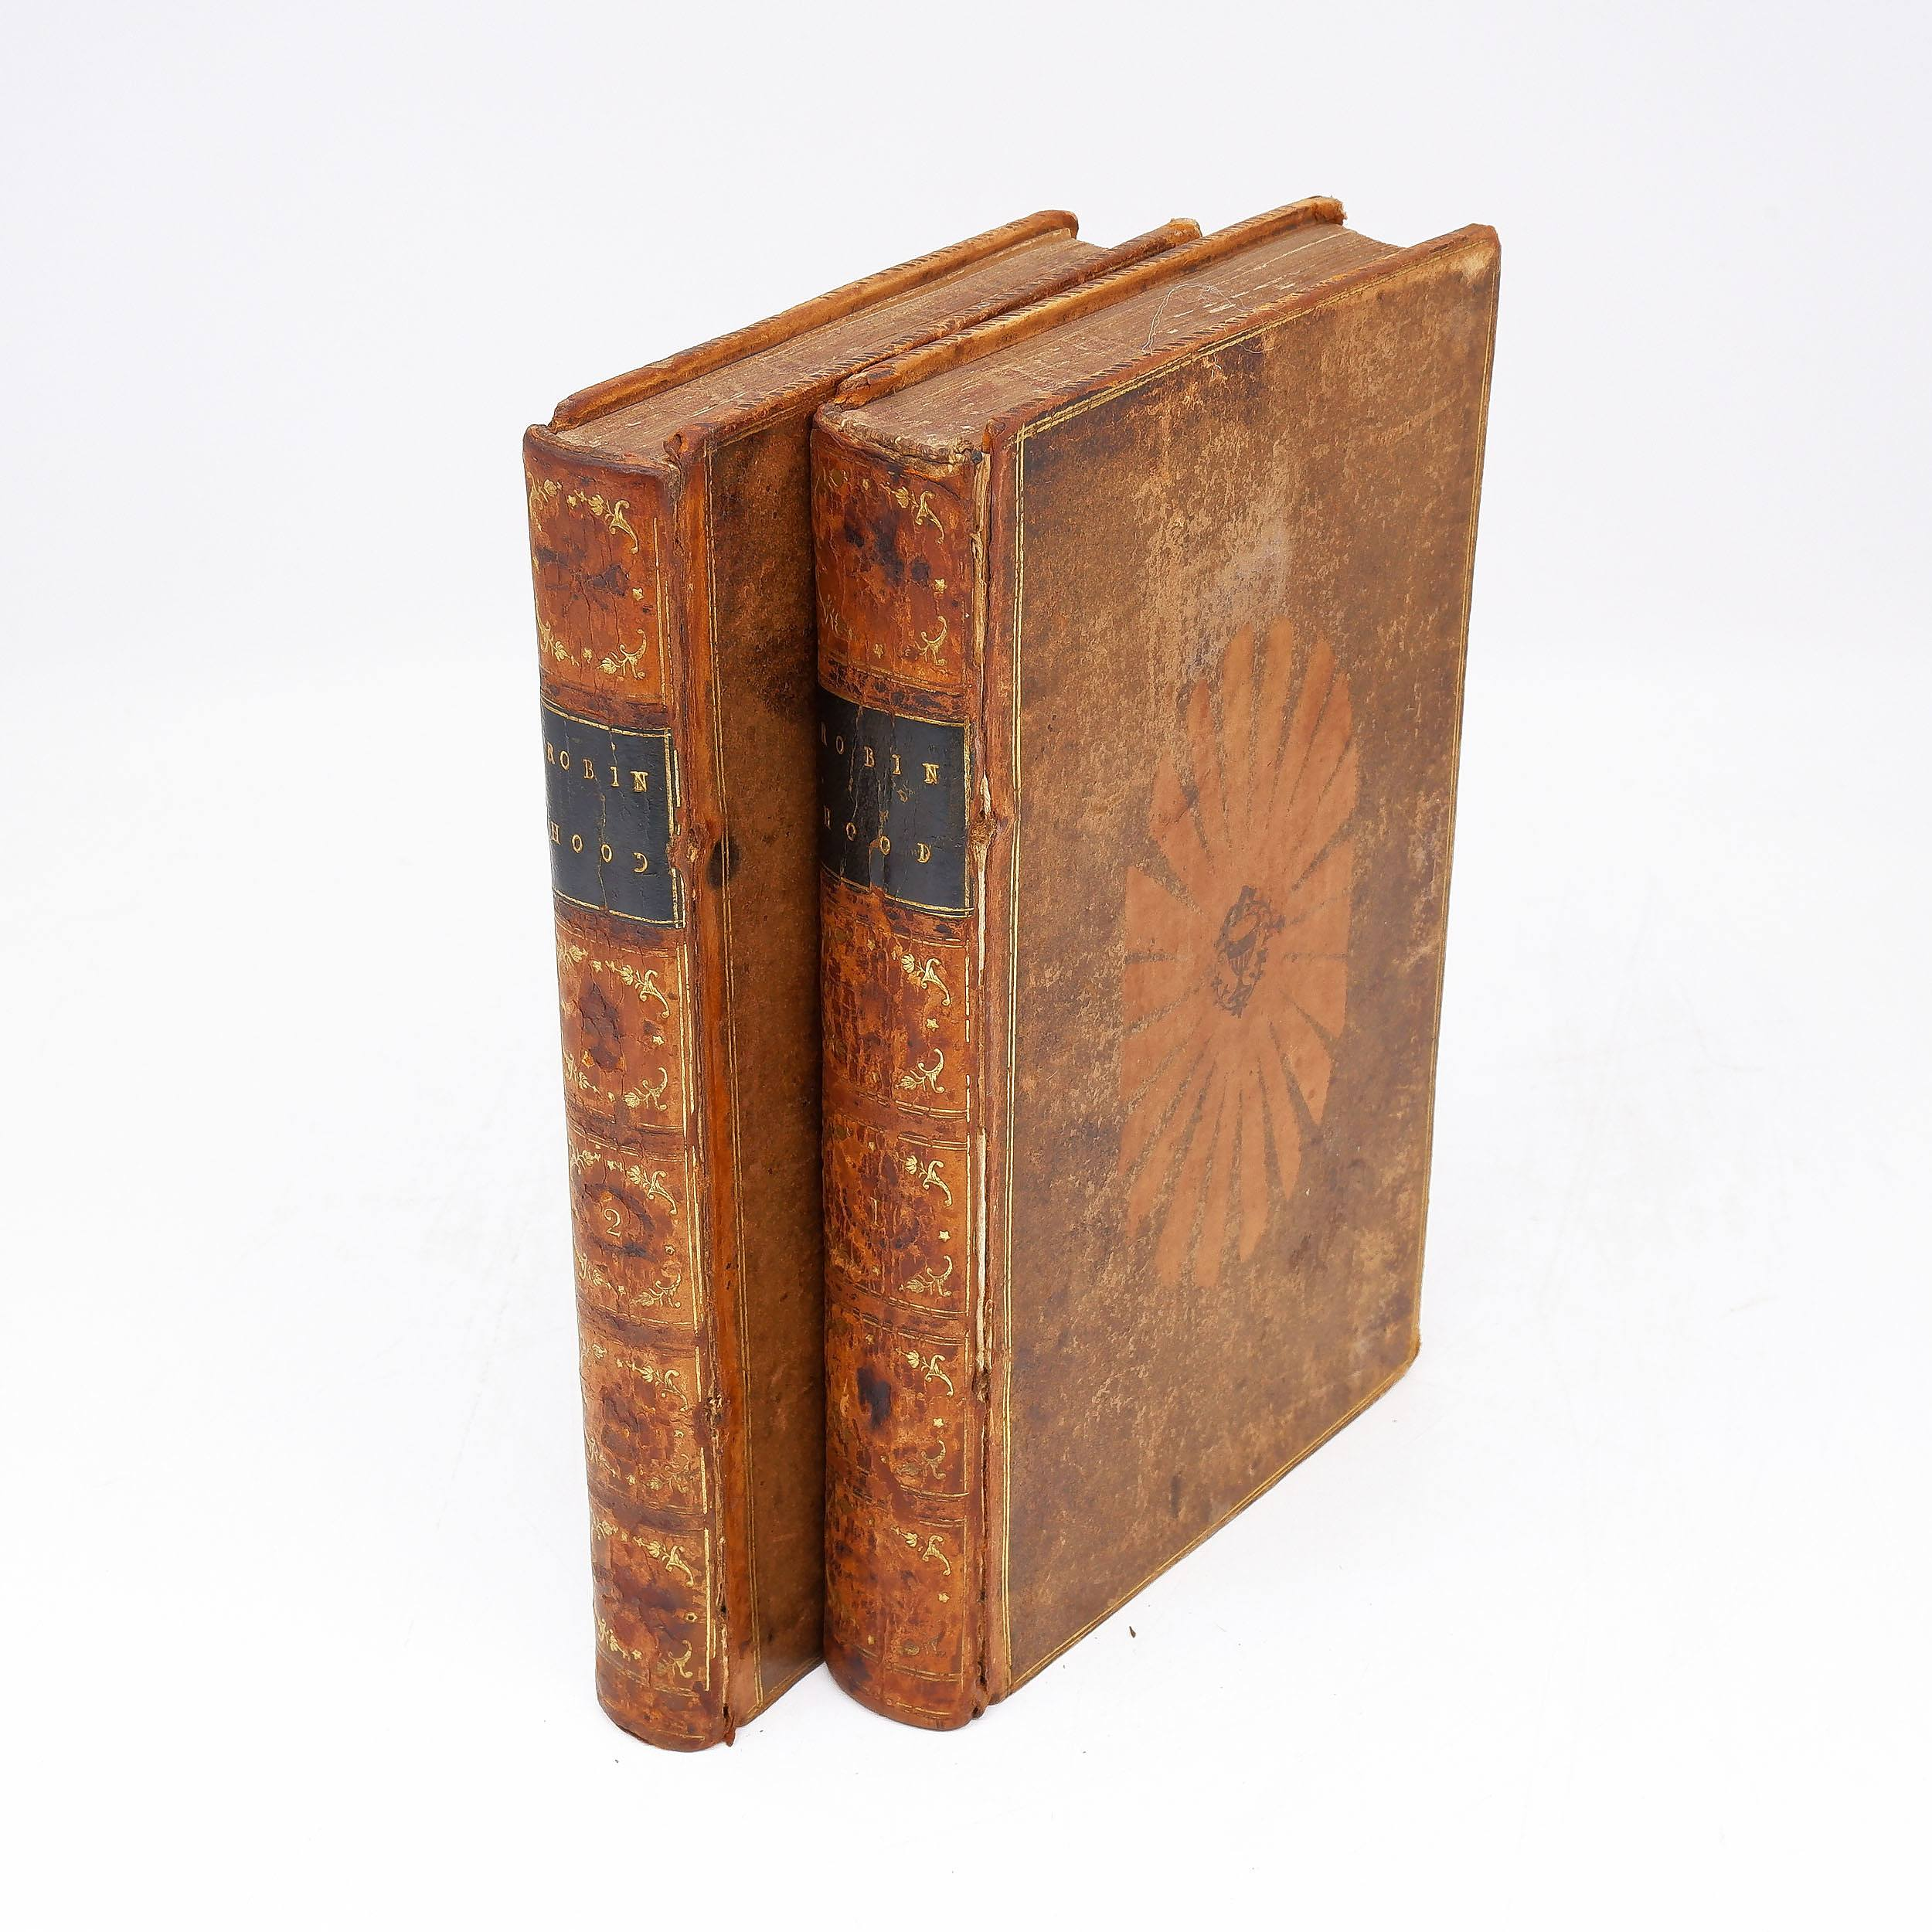 'Two Volumes of Robin Hood, London, 1795'